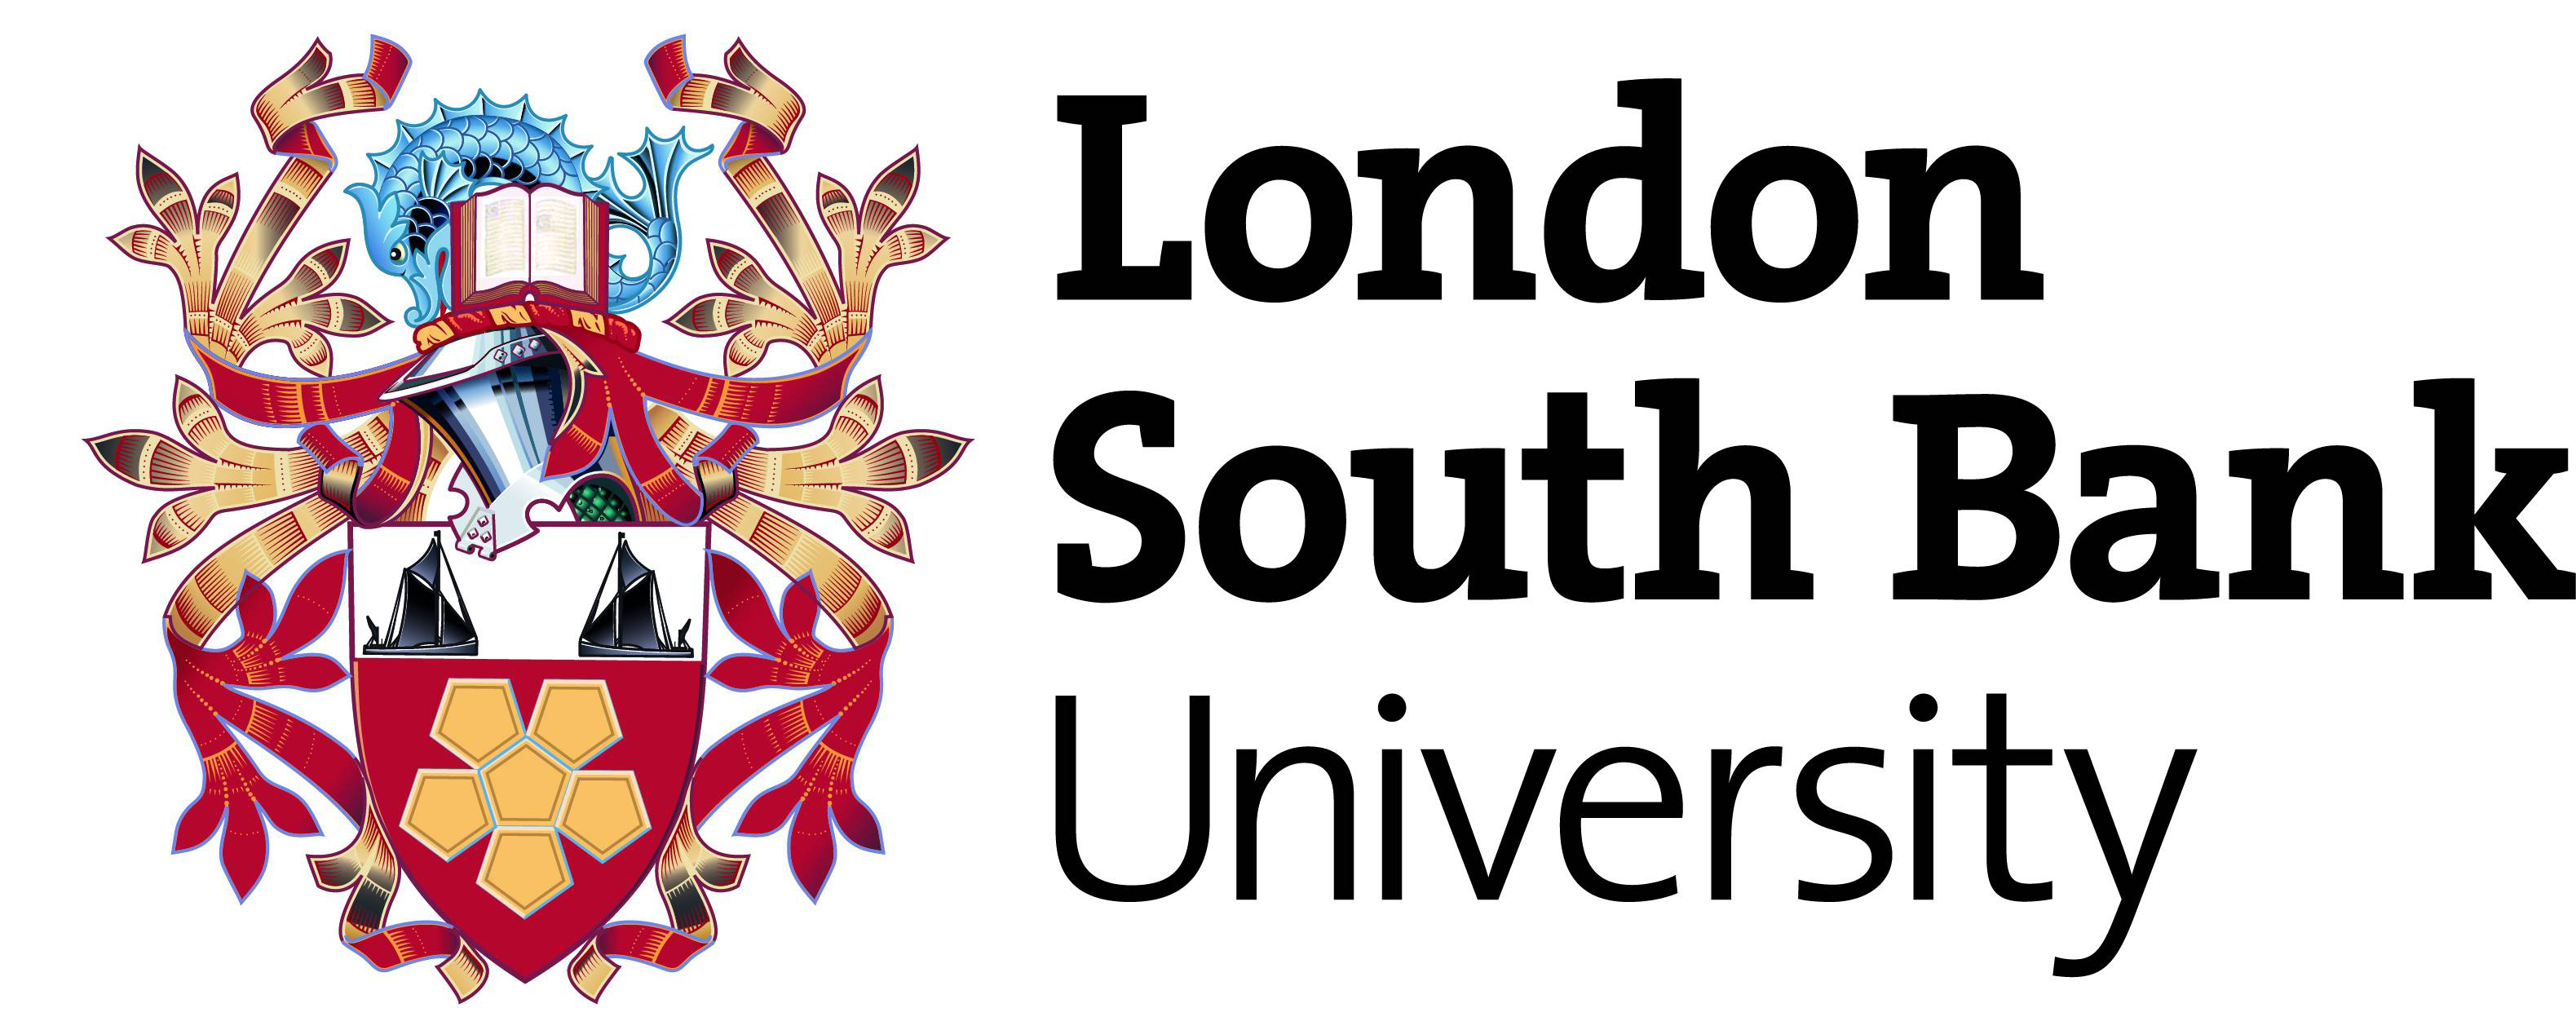 London South Bank University awarded university of the year for graduate employment